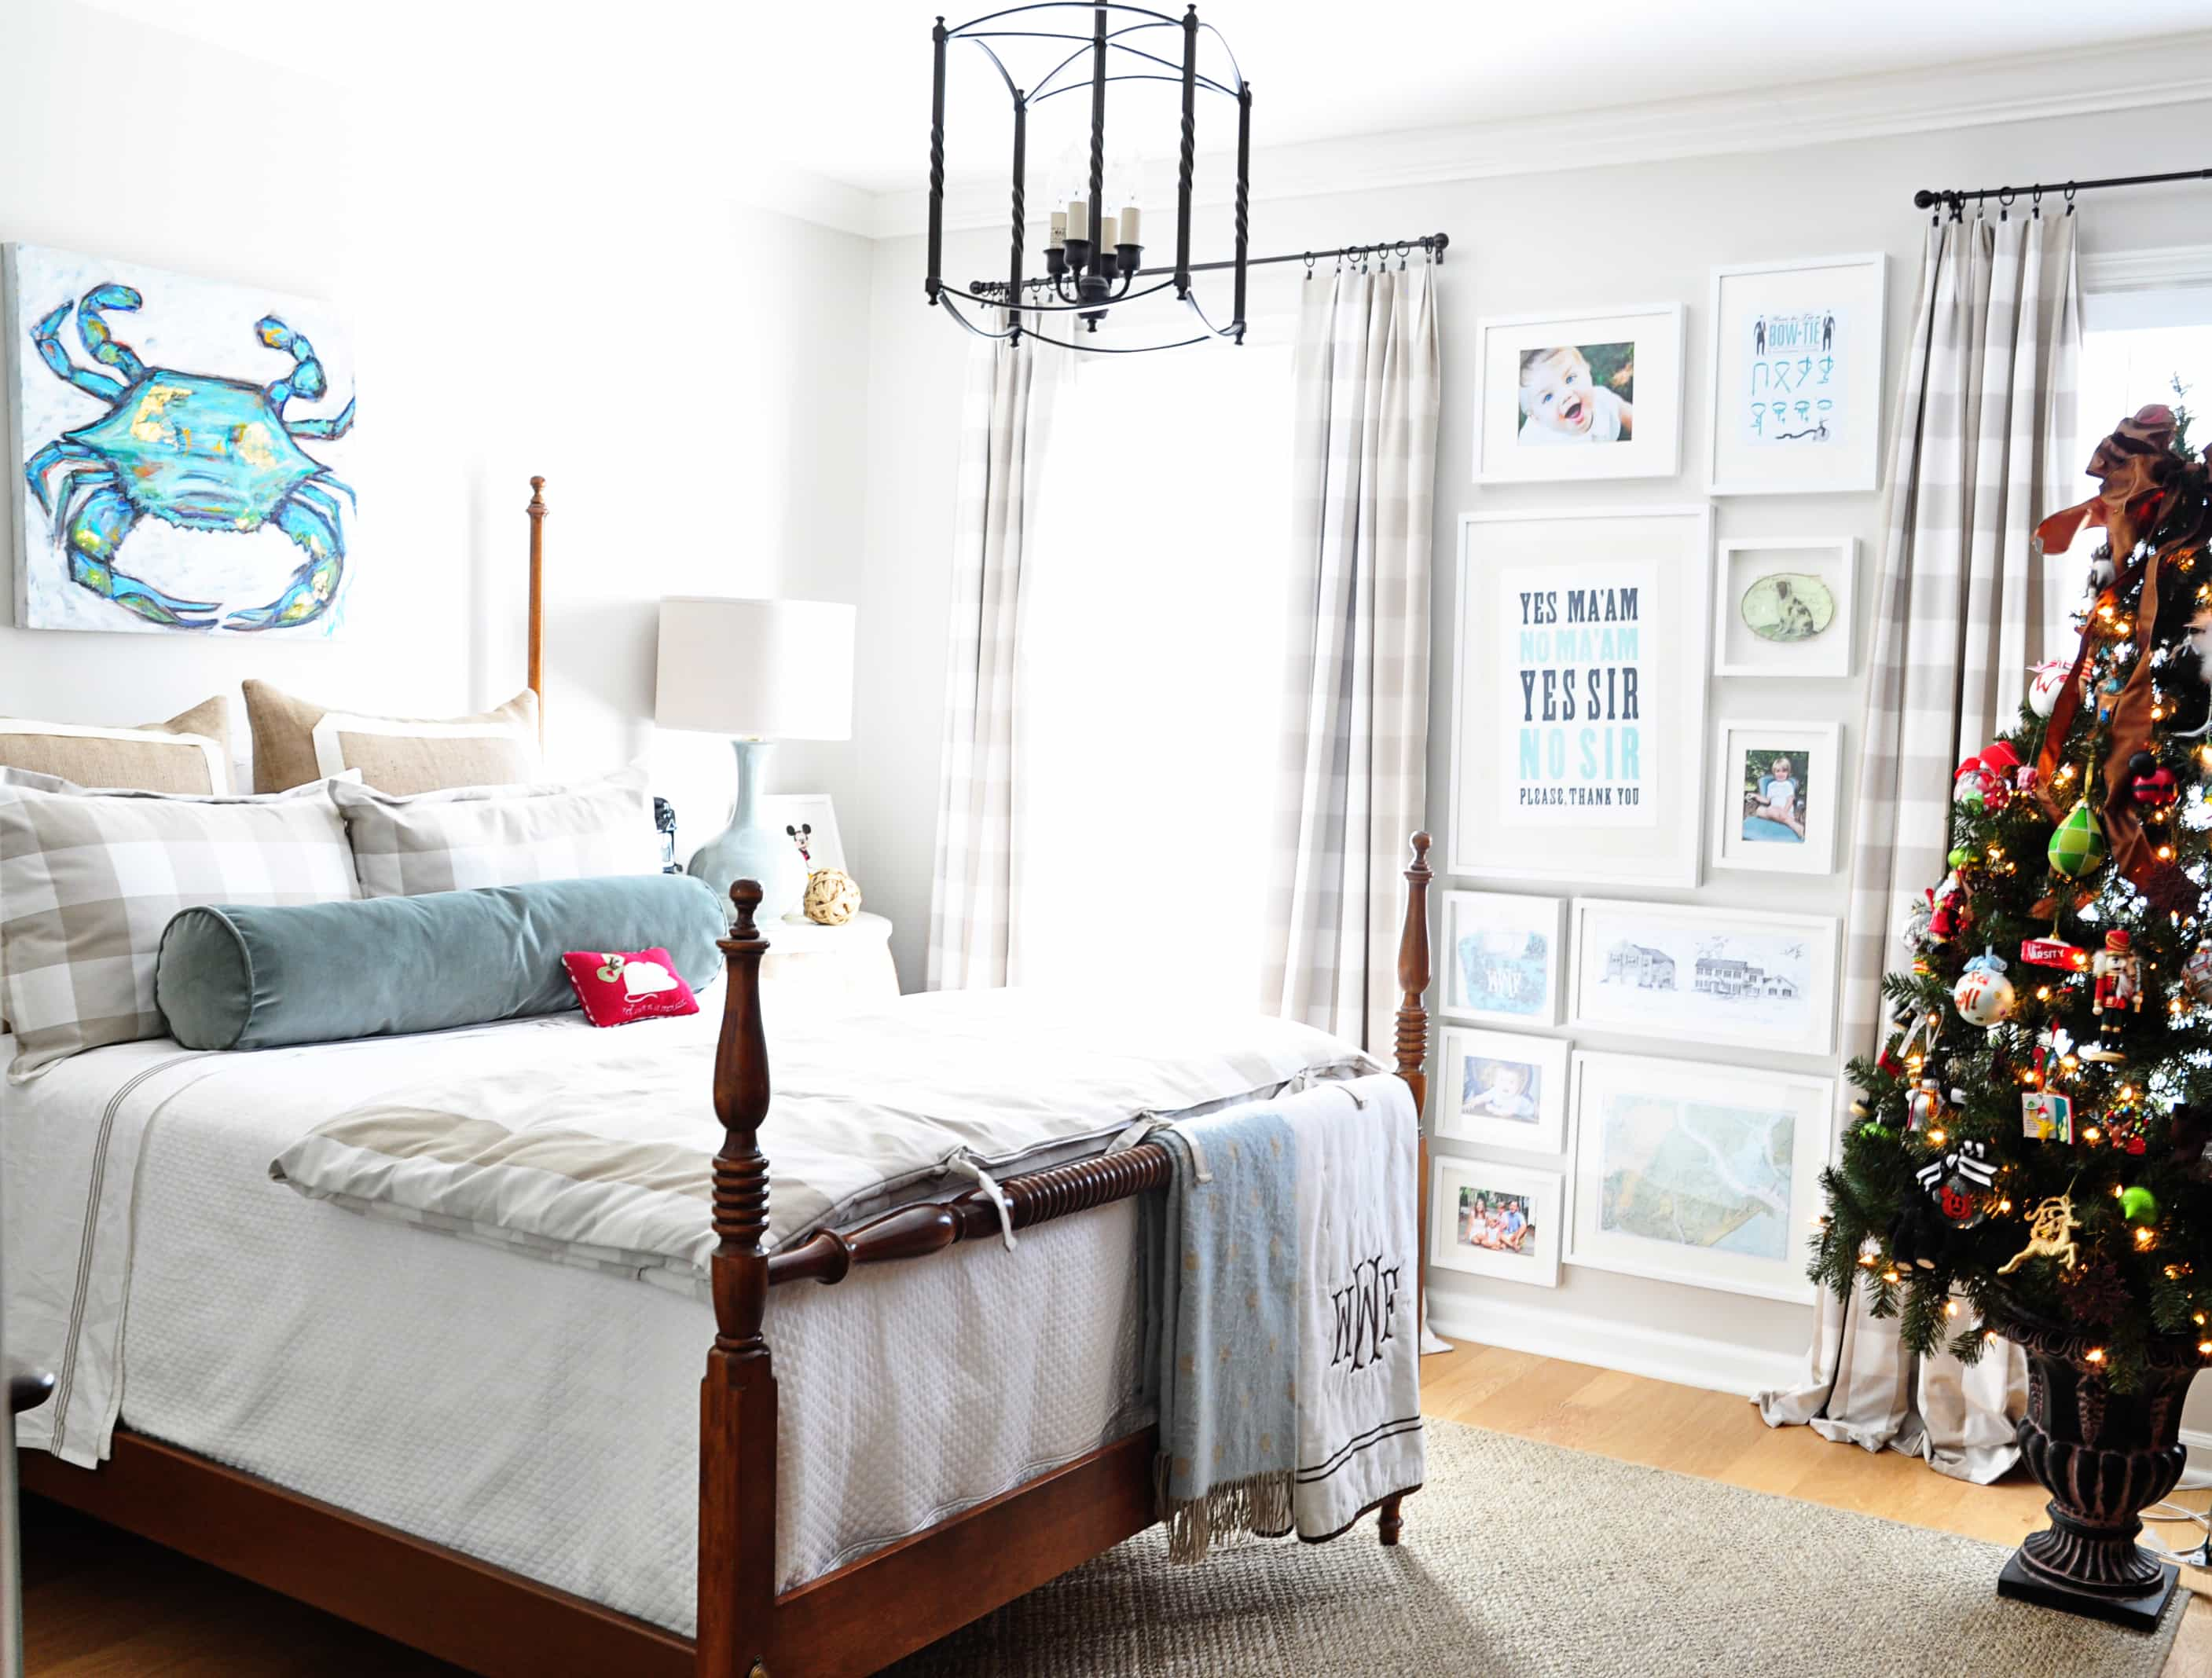 Lovely The guest room also gets a little tree and swaths of garland on each bed post Mother and Daddy O put trees up for guests in every bedroom and I love doing